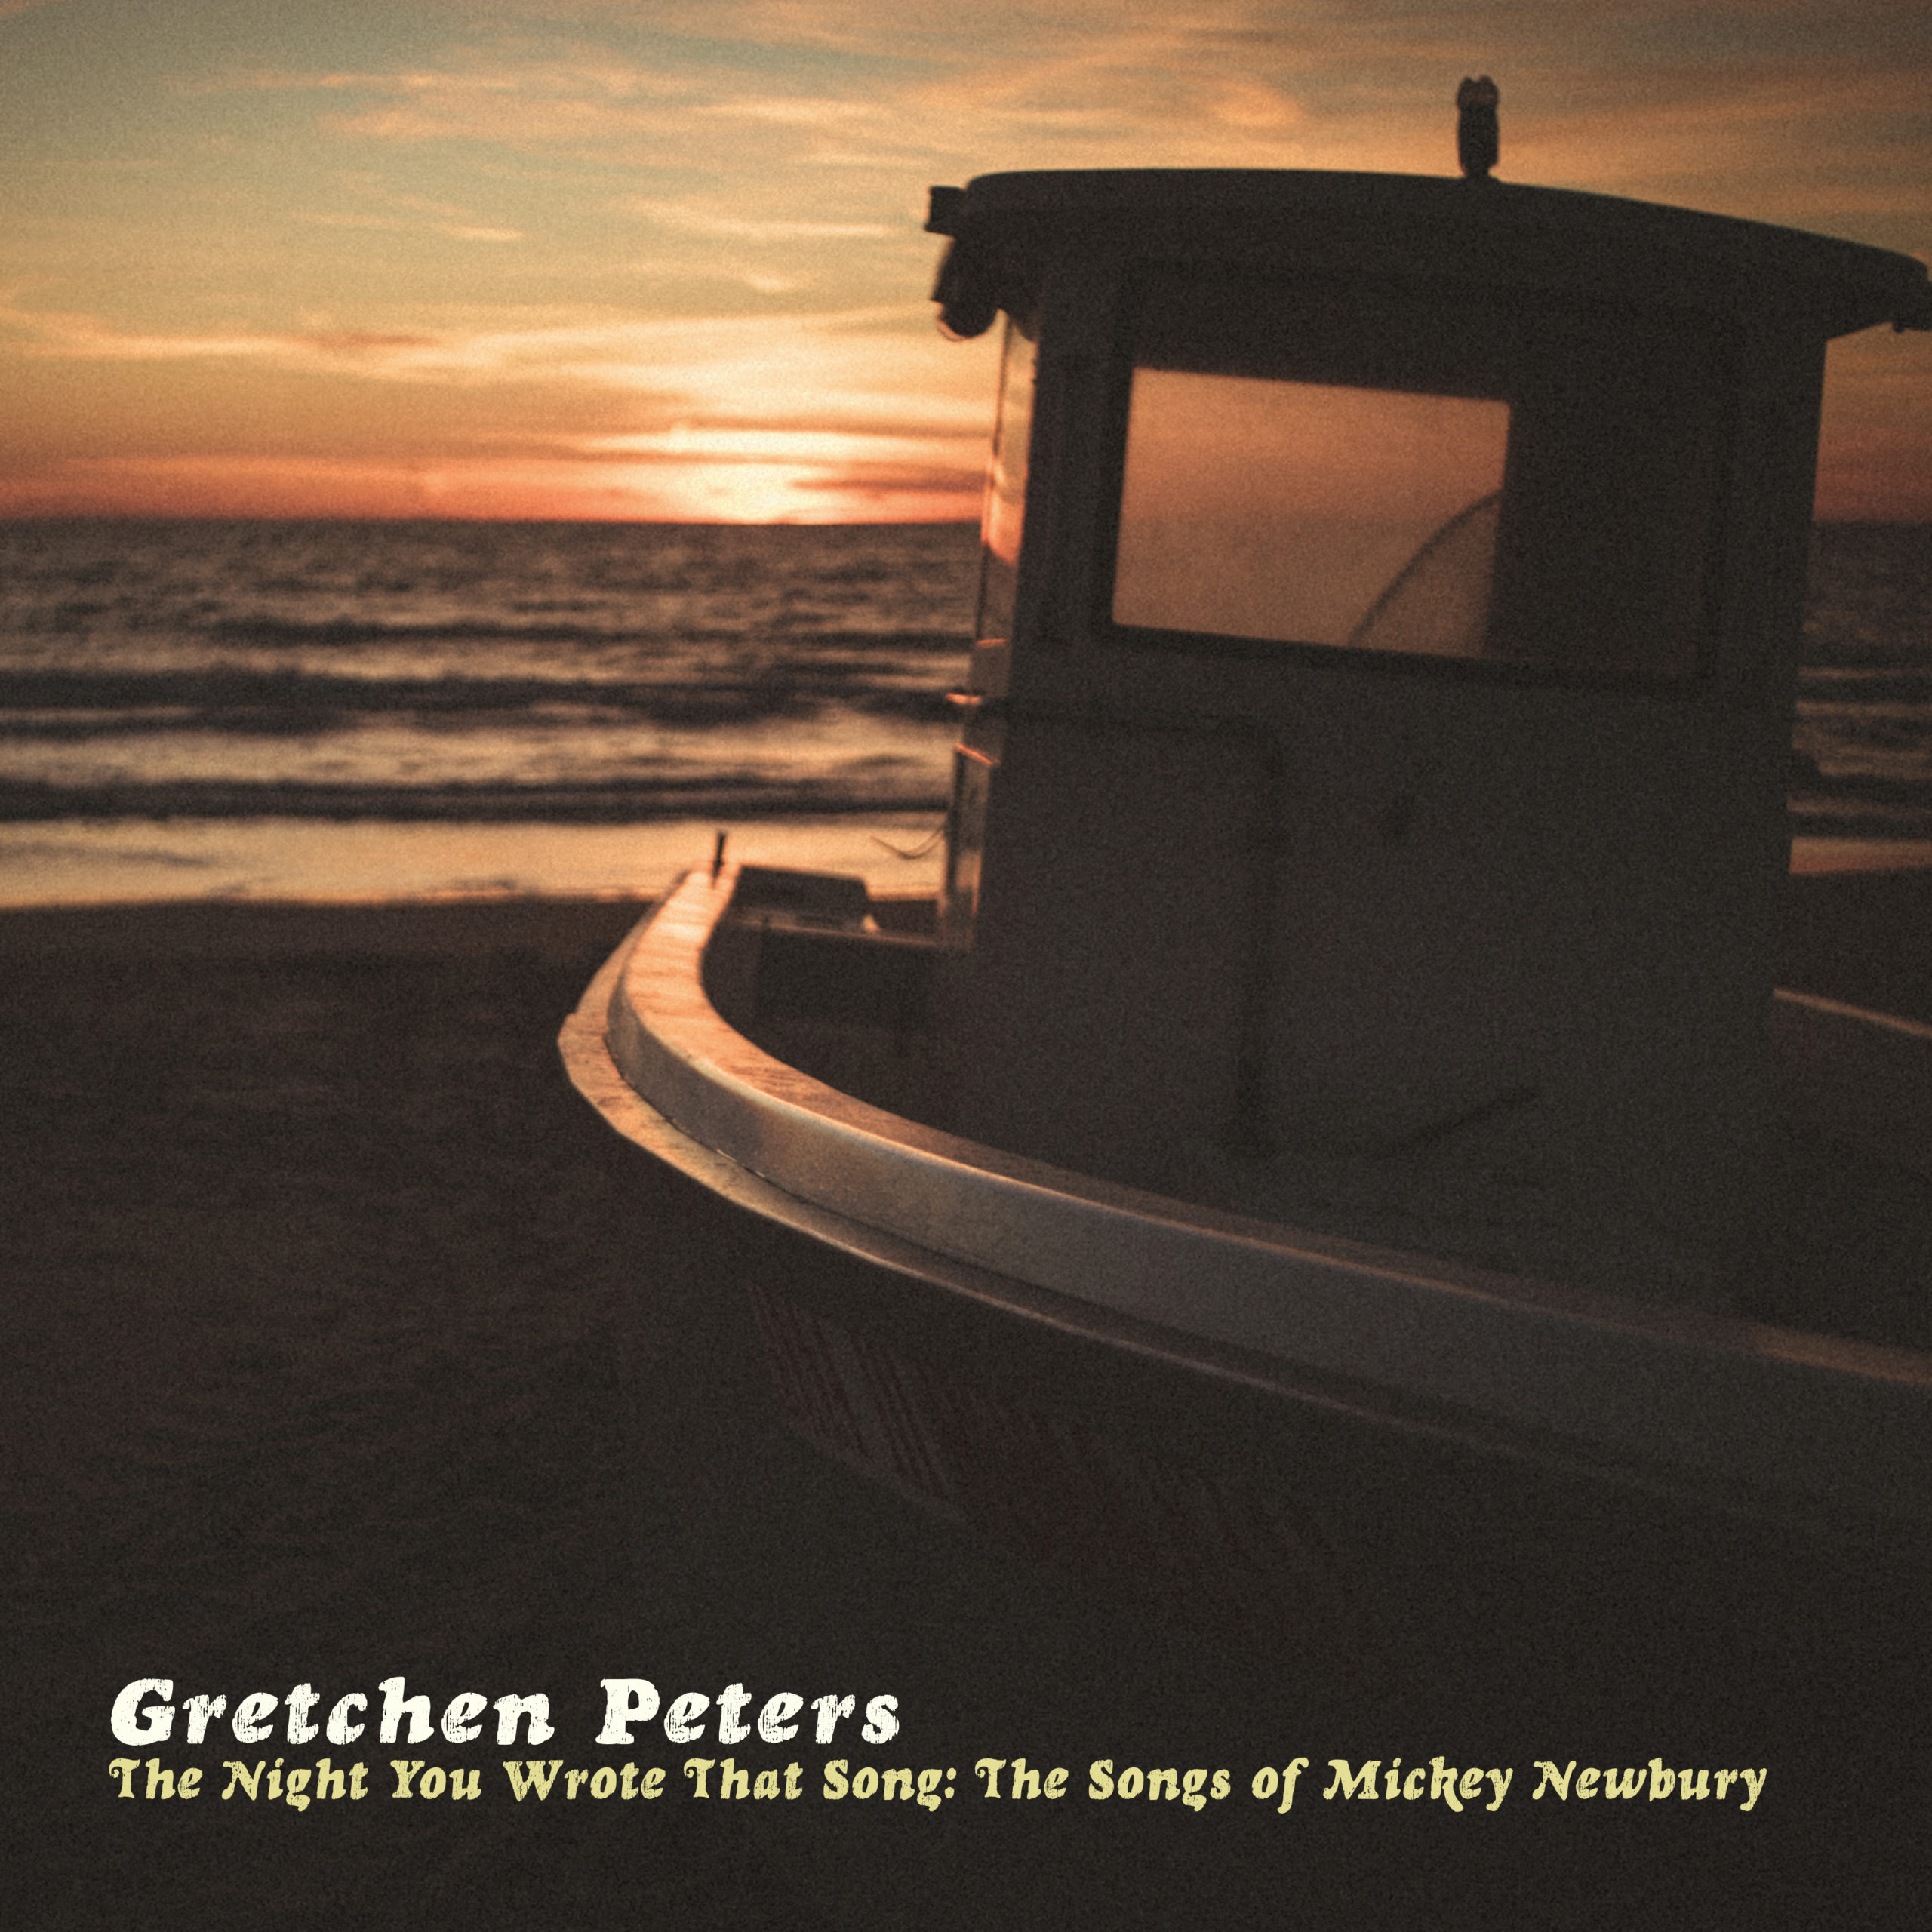 Gretchen Peters: The Night You Wrote That Song